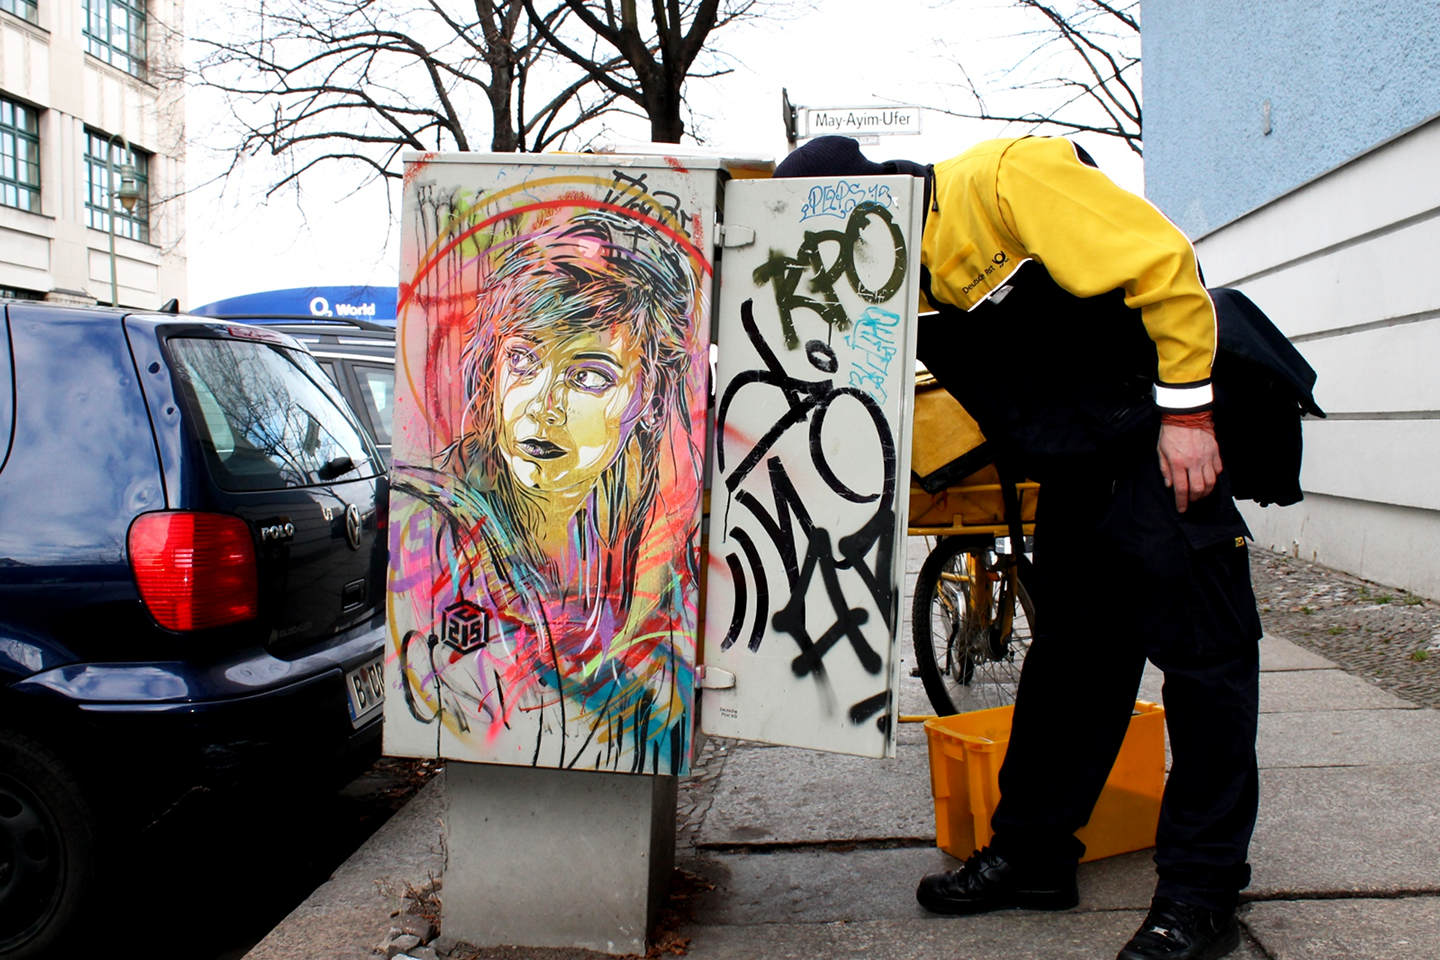 C215 - Street Art Berlin - Post Box